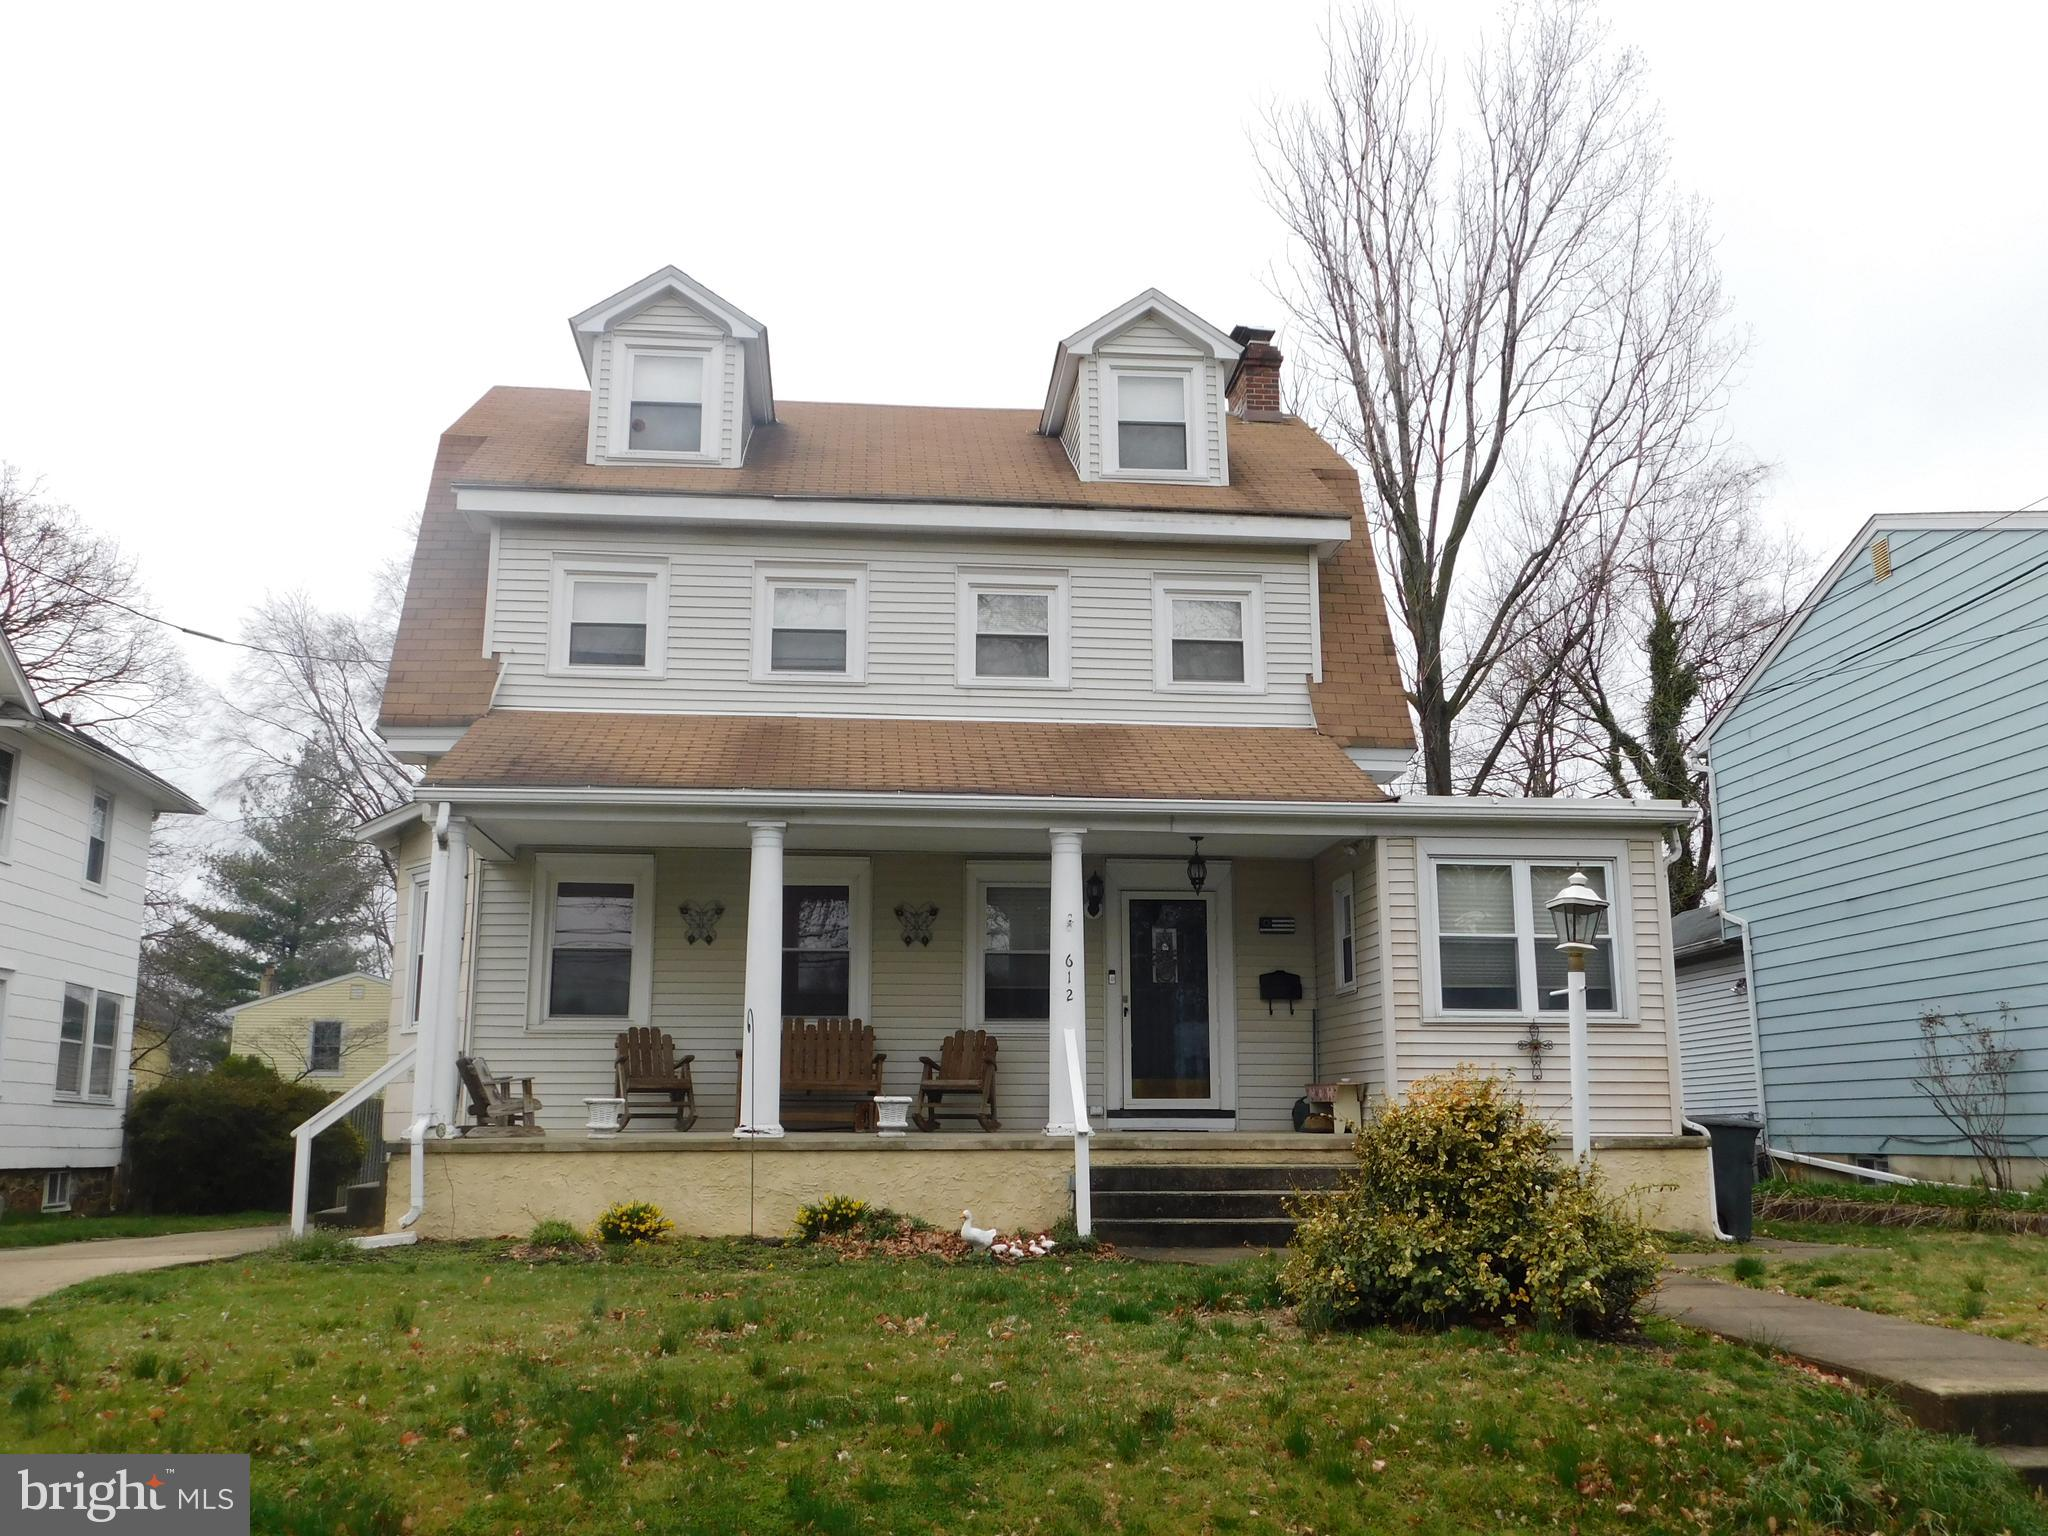 This large three story  single in Interboro School District has plenty of room.   Large open front porch. Formal  living room w/mantle fireplace, step down to an  enclosed side room w/bar, large eatin kitchen w/breakfast bar, dining room and 1st fl family room with powder room and mud room w/side exit to rear deck.  2nd floor has three bedrooms and full bath, also additional room leading to third floor master bedroom suite w/full master bath.  Full partially finished basement w/office and laundry.  This home also features a large private drive leading to a detached 2 car garage w/electric service.  Convenient to airport, transportation and shopping.